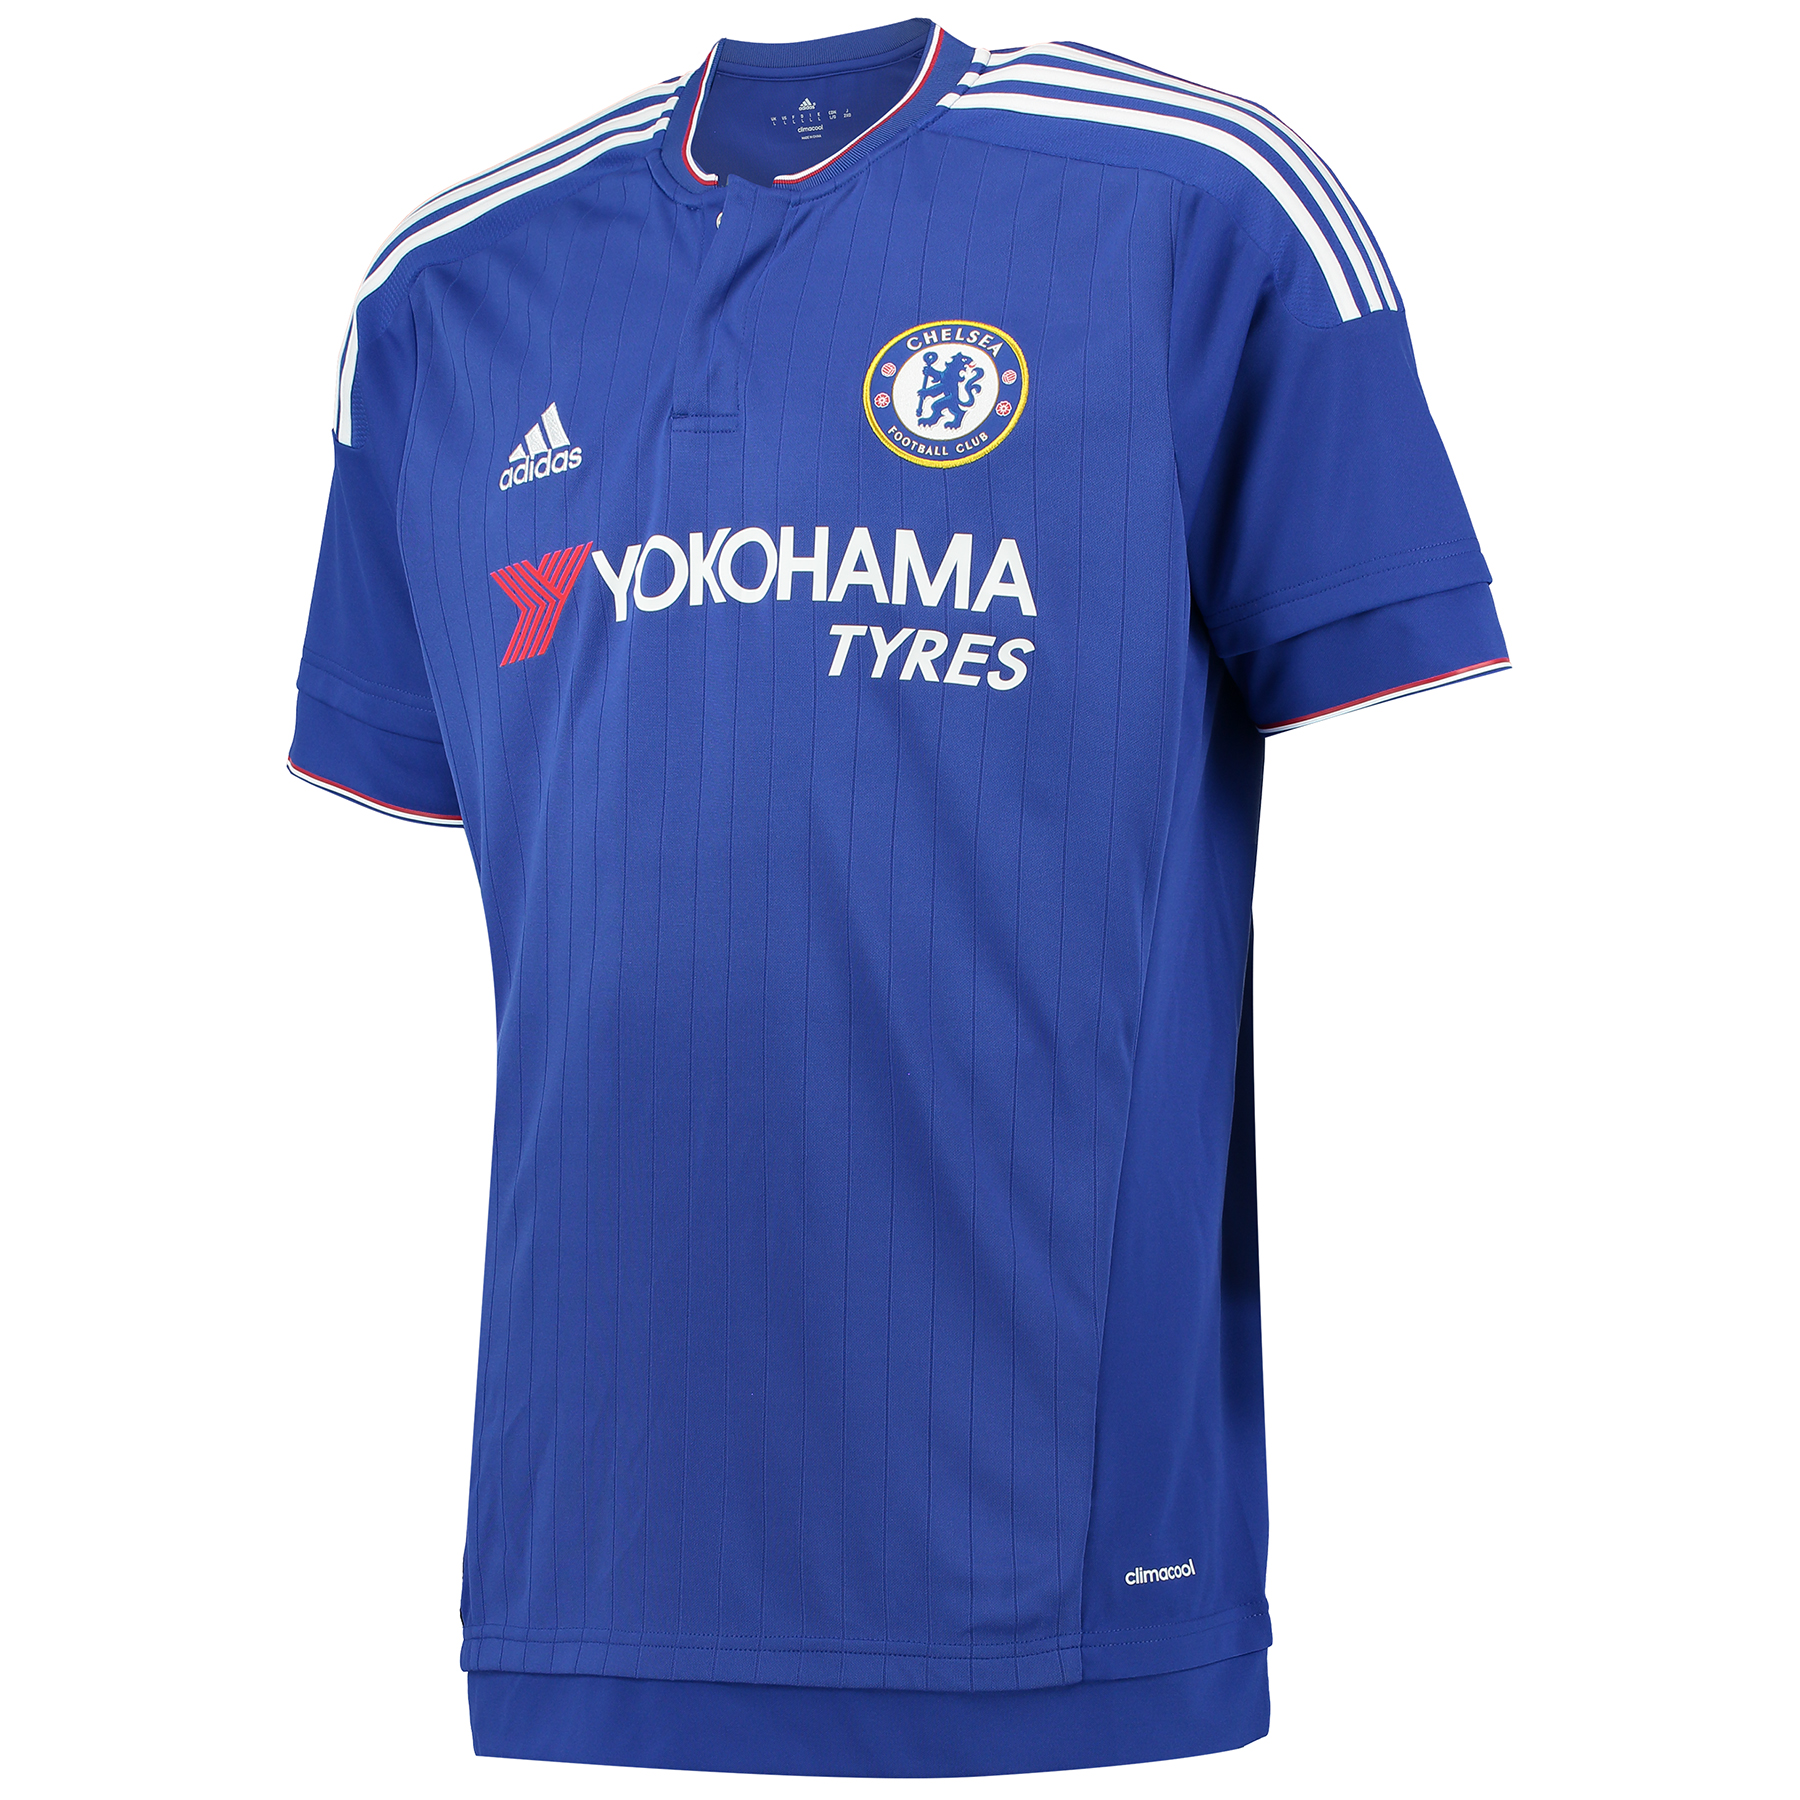 Chelsea Home Shirt 2015/16 Show your support for your favourite club with the new 2015/16 Chelsea home shirt. The Blues have the speed and control that make goals. This men's football jersey is a version of the one Chelsea wear when they're putting points on the board during home matches. This short sleeve shirt features climacool® ventilation and their team badge on the chest. Join the likes of Diego Costa, Cesc Fabregas and Eden Hazard and order your new Chelsea shirt today! Benefits: Engineered fabric on front CLIMACOOL® Provides heat and moisture management through ventilation Regular Fit Club crest: woven badge 100% Polyester